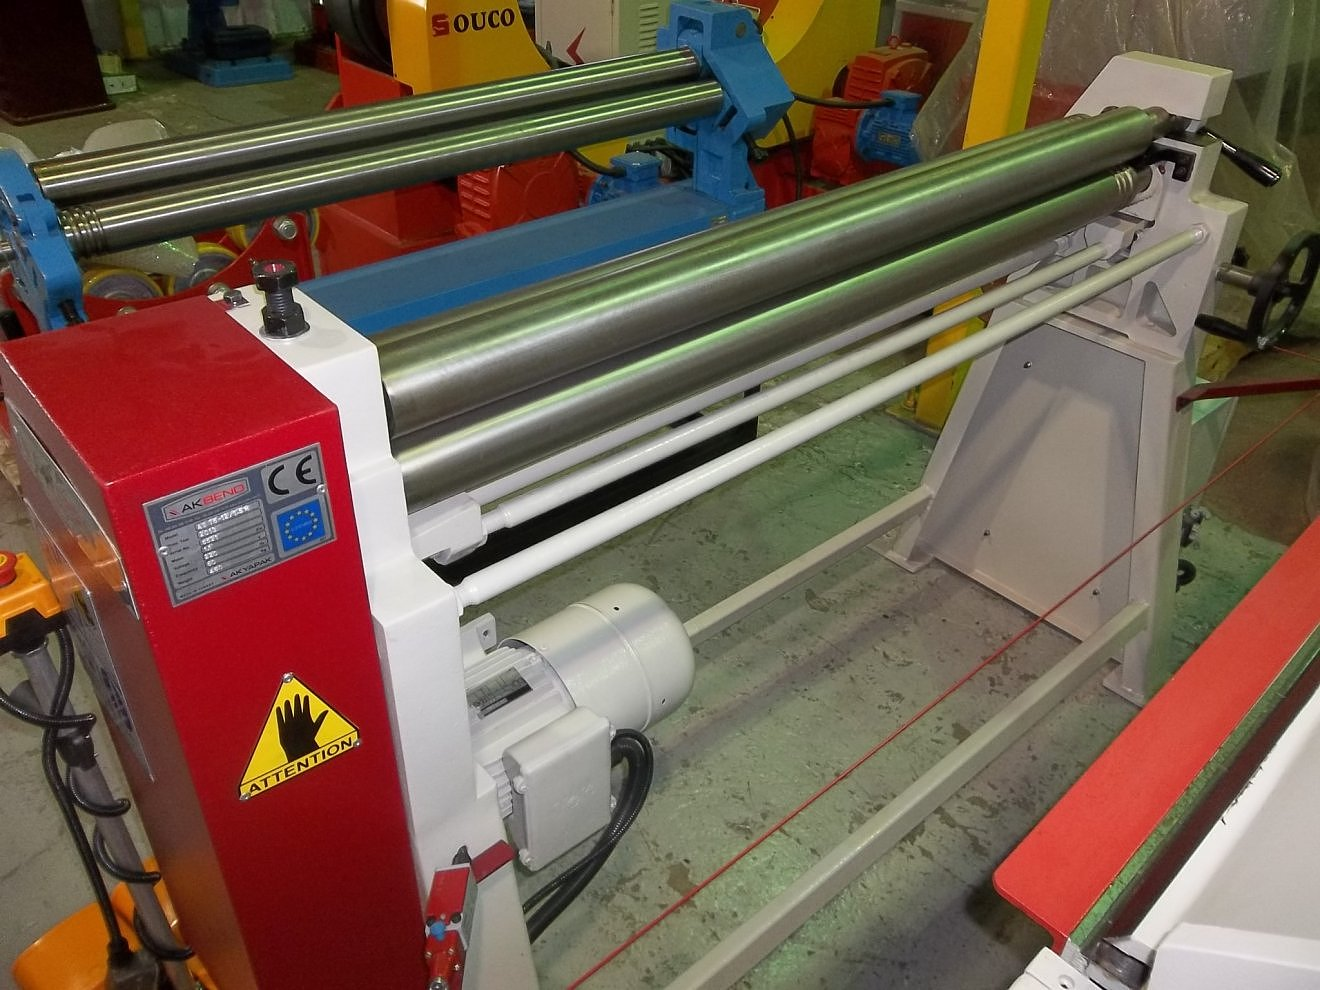 SLIP ROLL MACHINE 1.5x1250mm